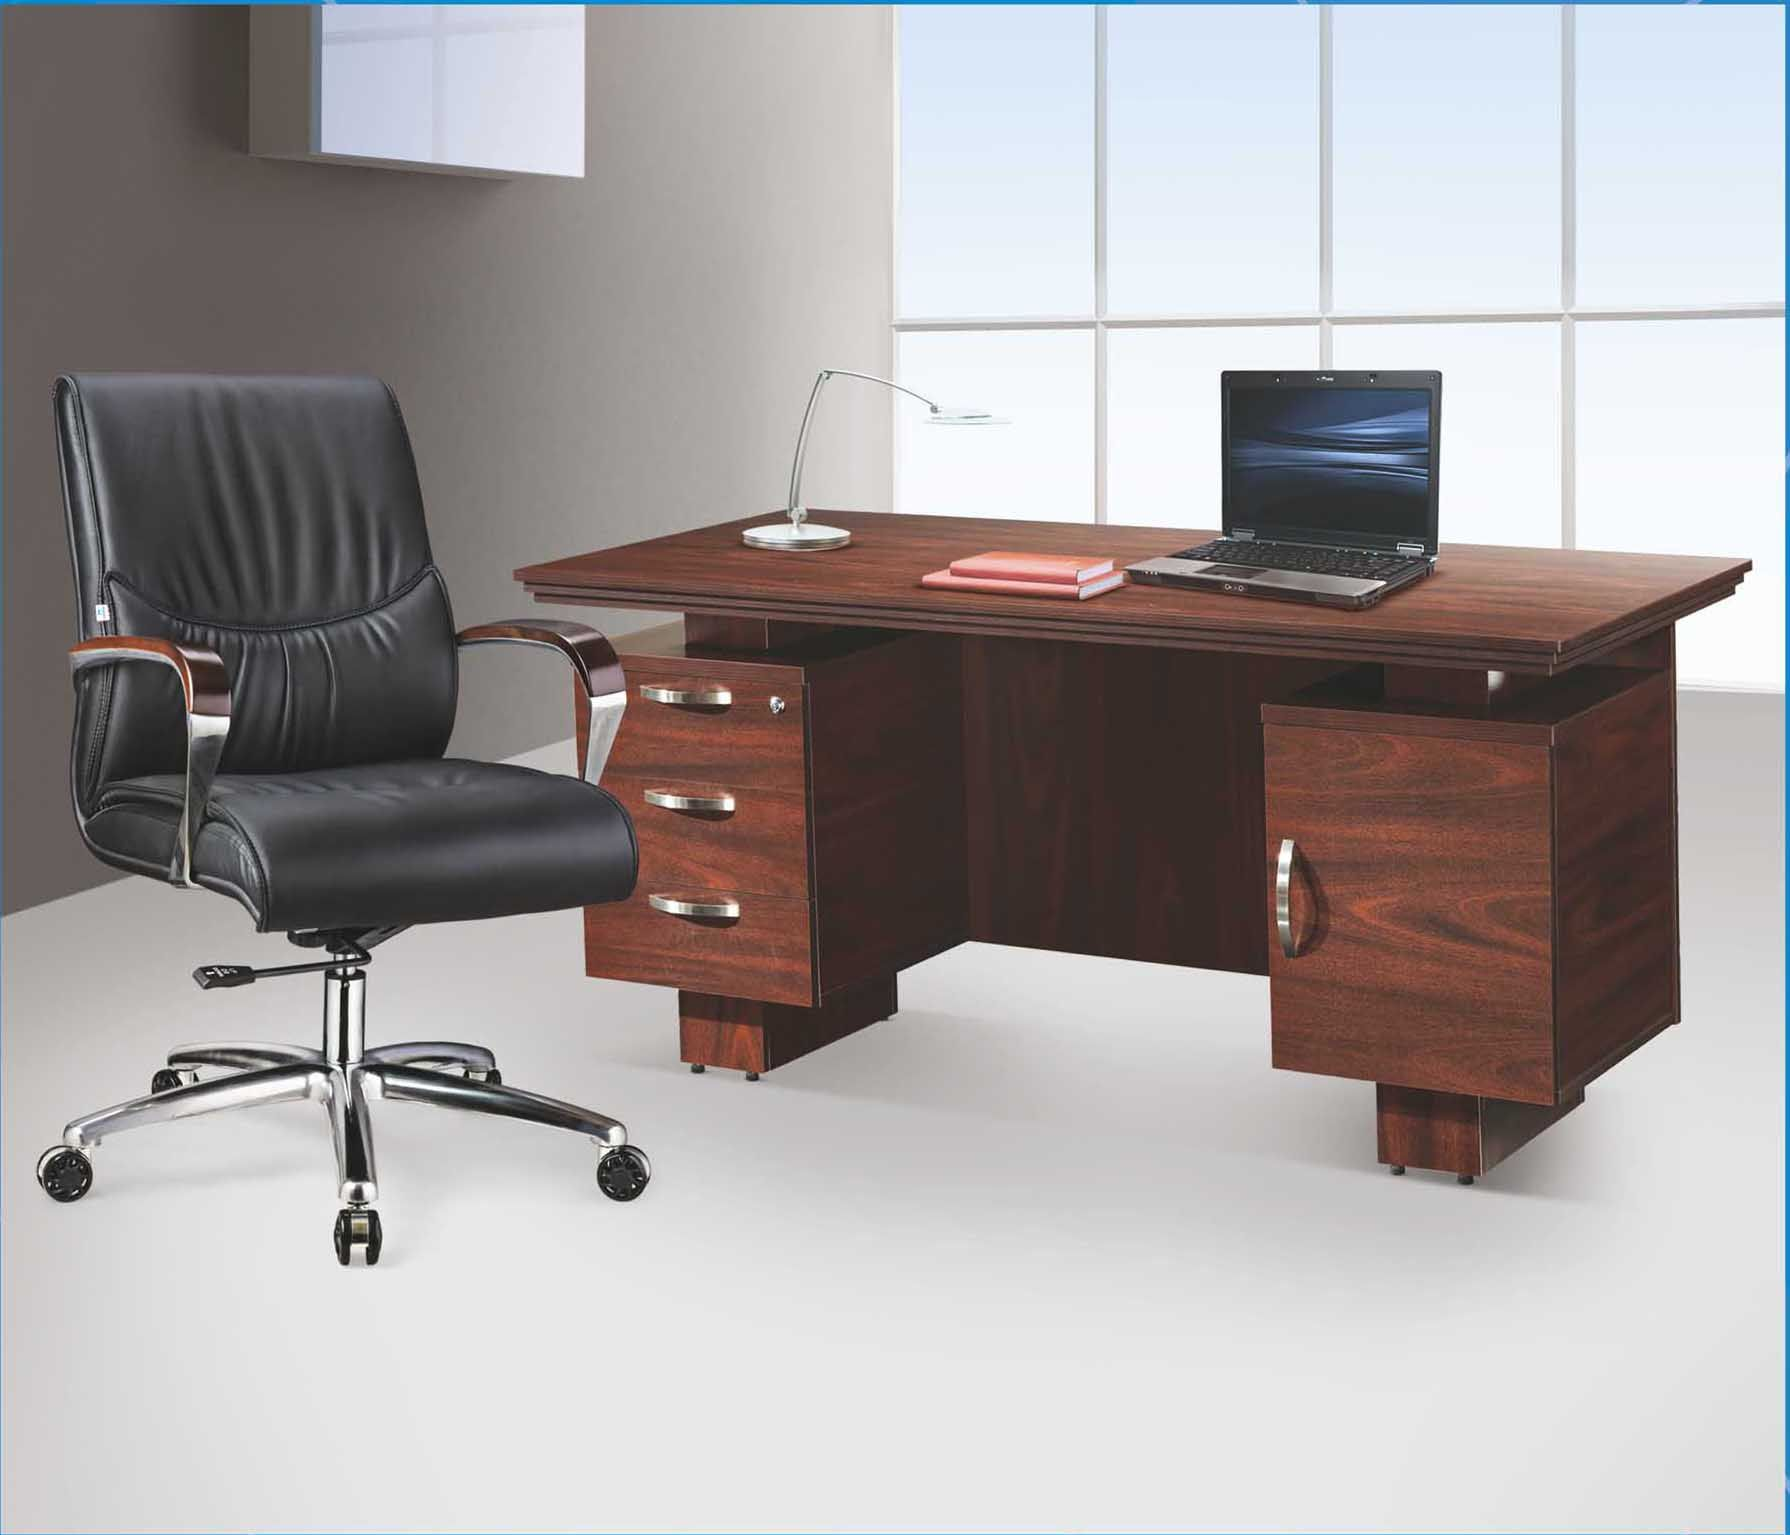 Marvelous Buy Modular Office Furniture Online